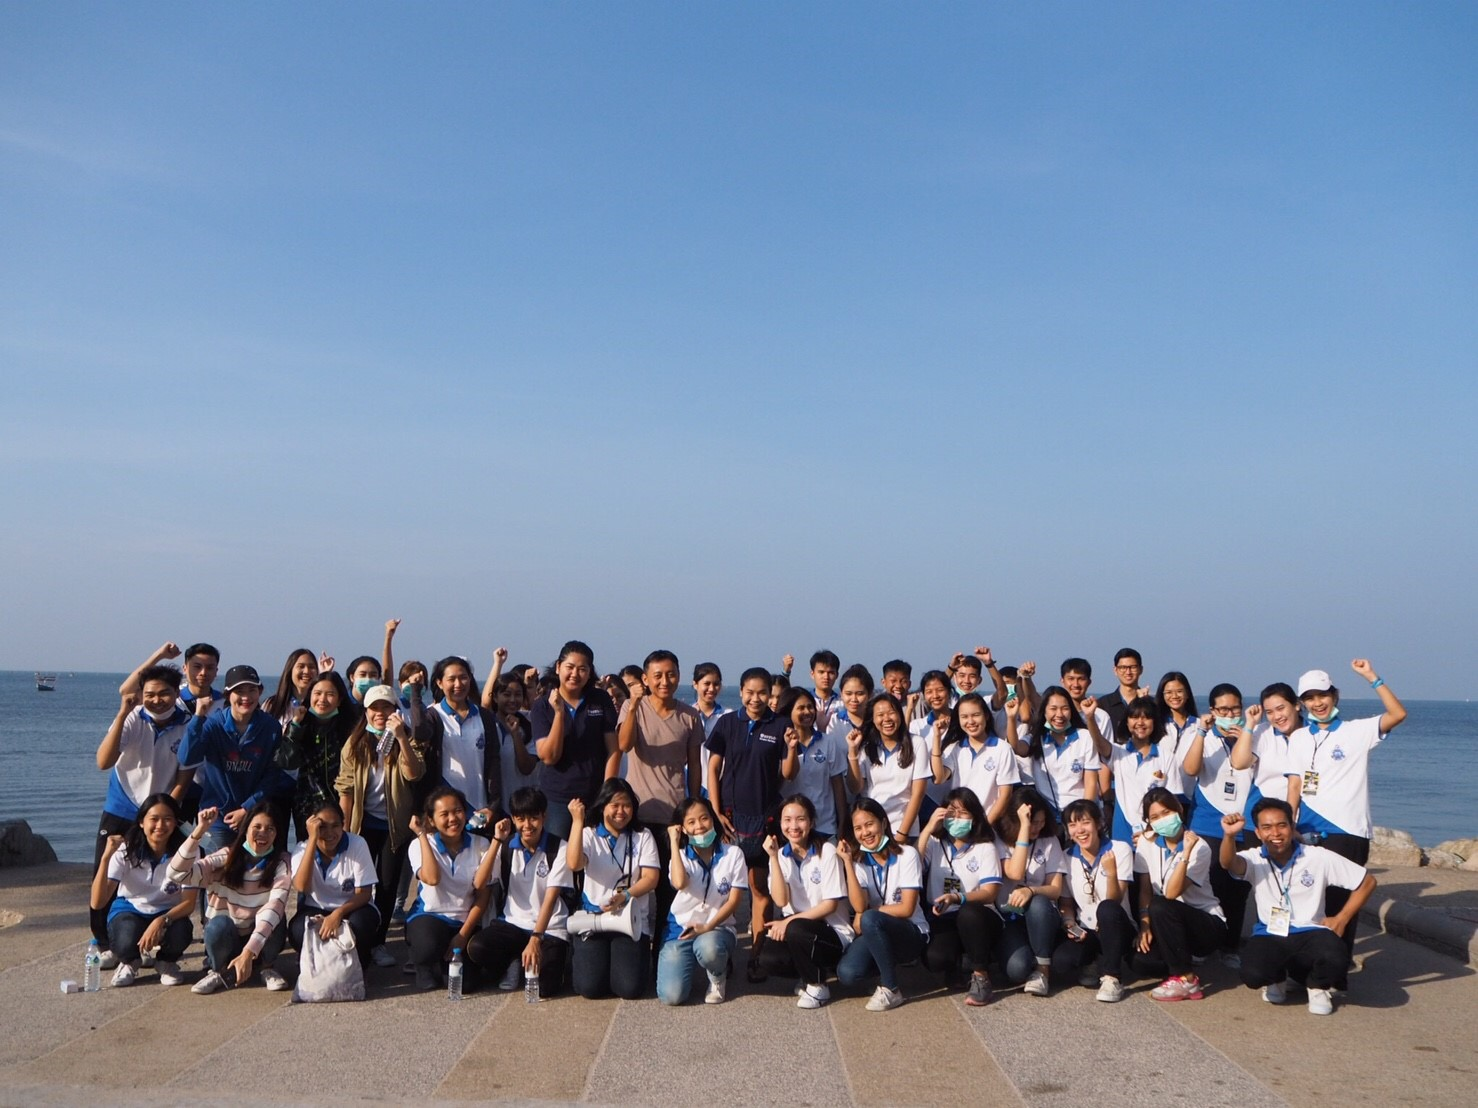 โครงการ The beach cleaning day